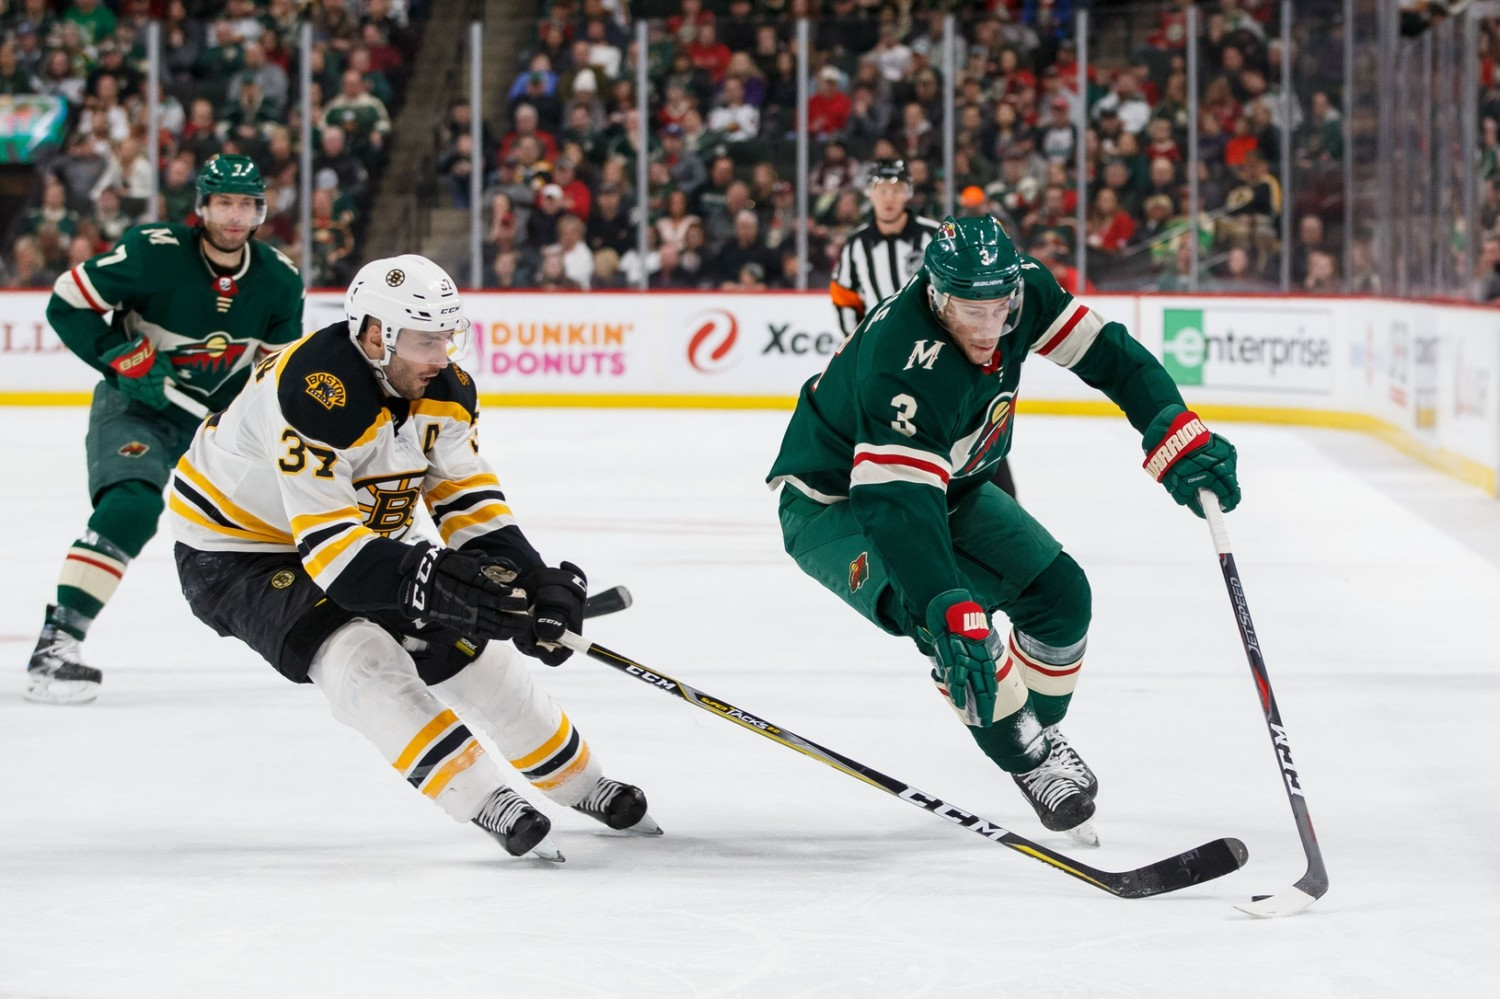 Coyle to be traded to Bruins by Wild for Donato, pick